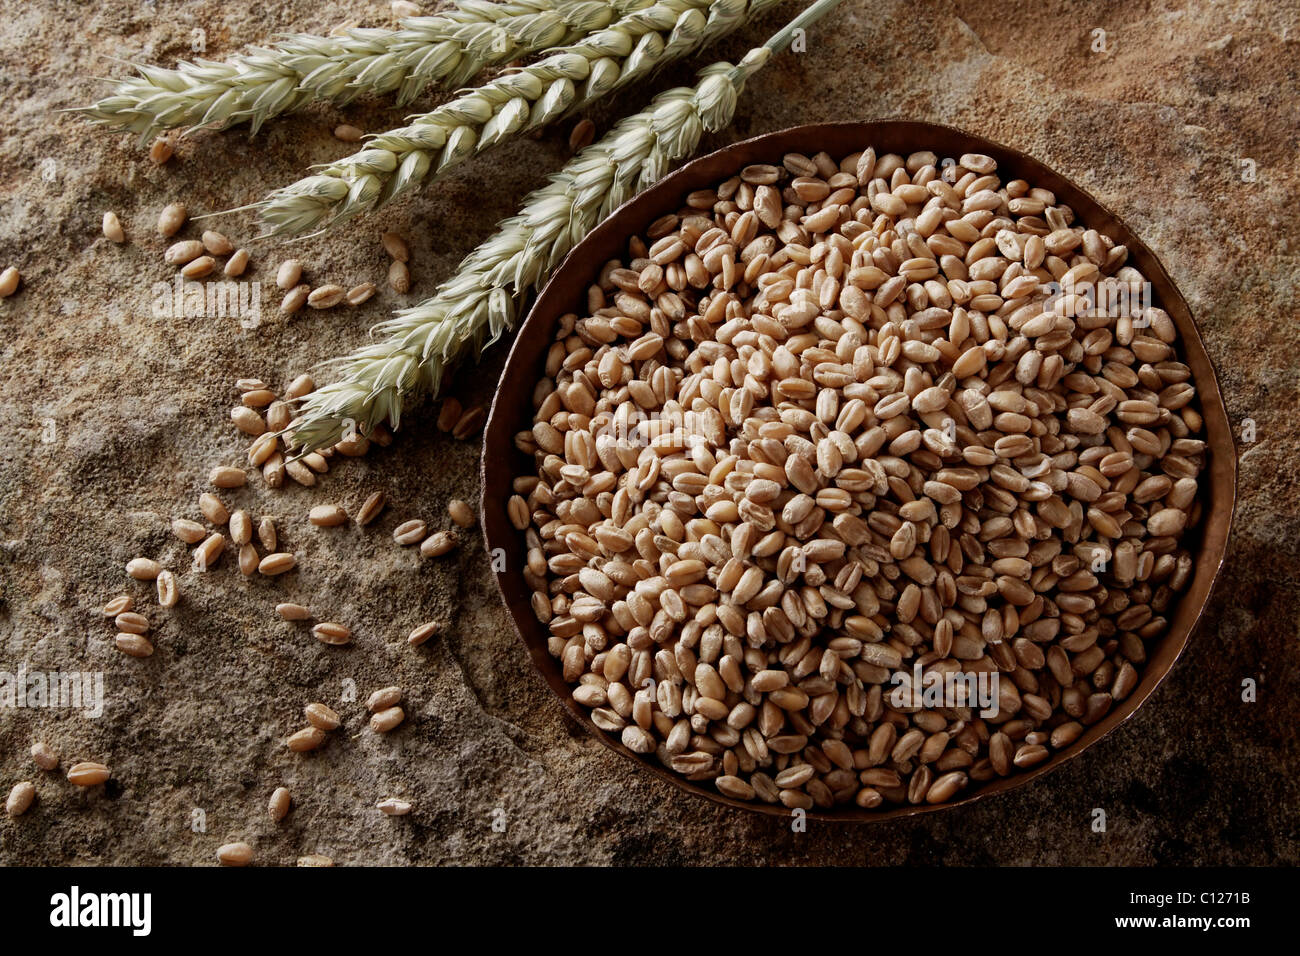 Wheat grains (Triticum) in a copper bowl on a stone surface Stock Photo